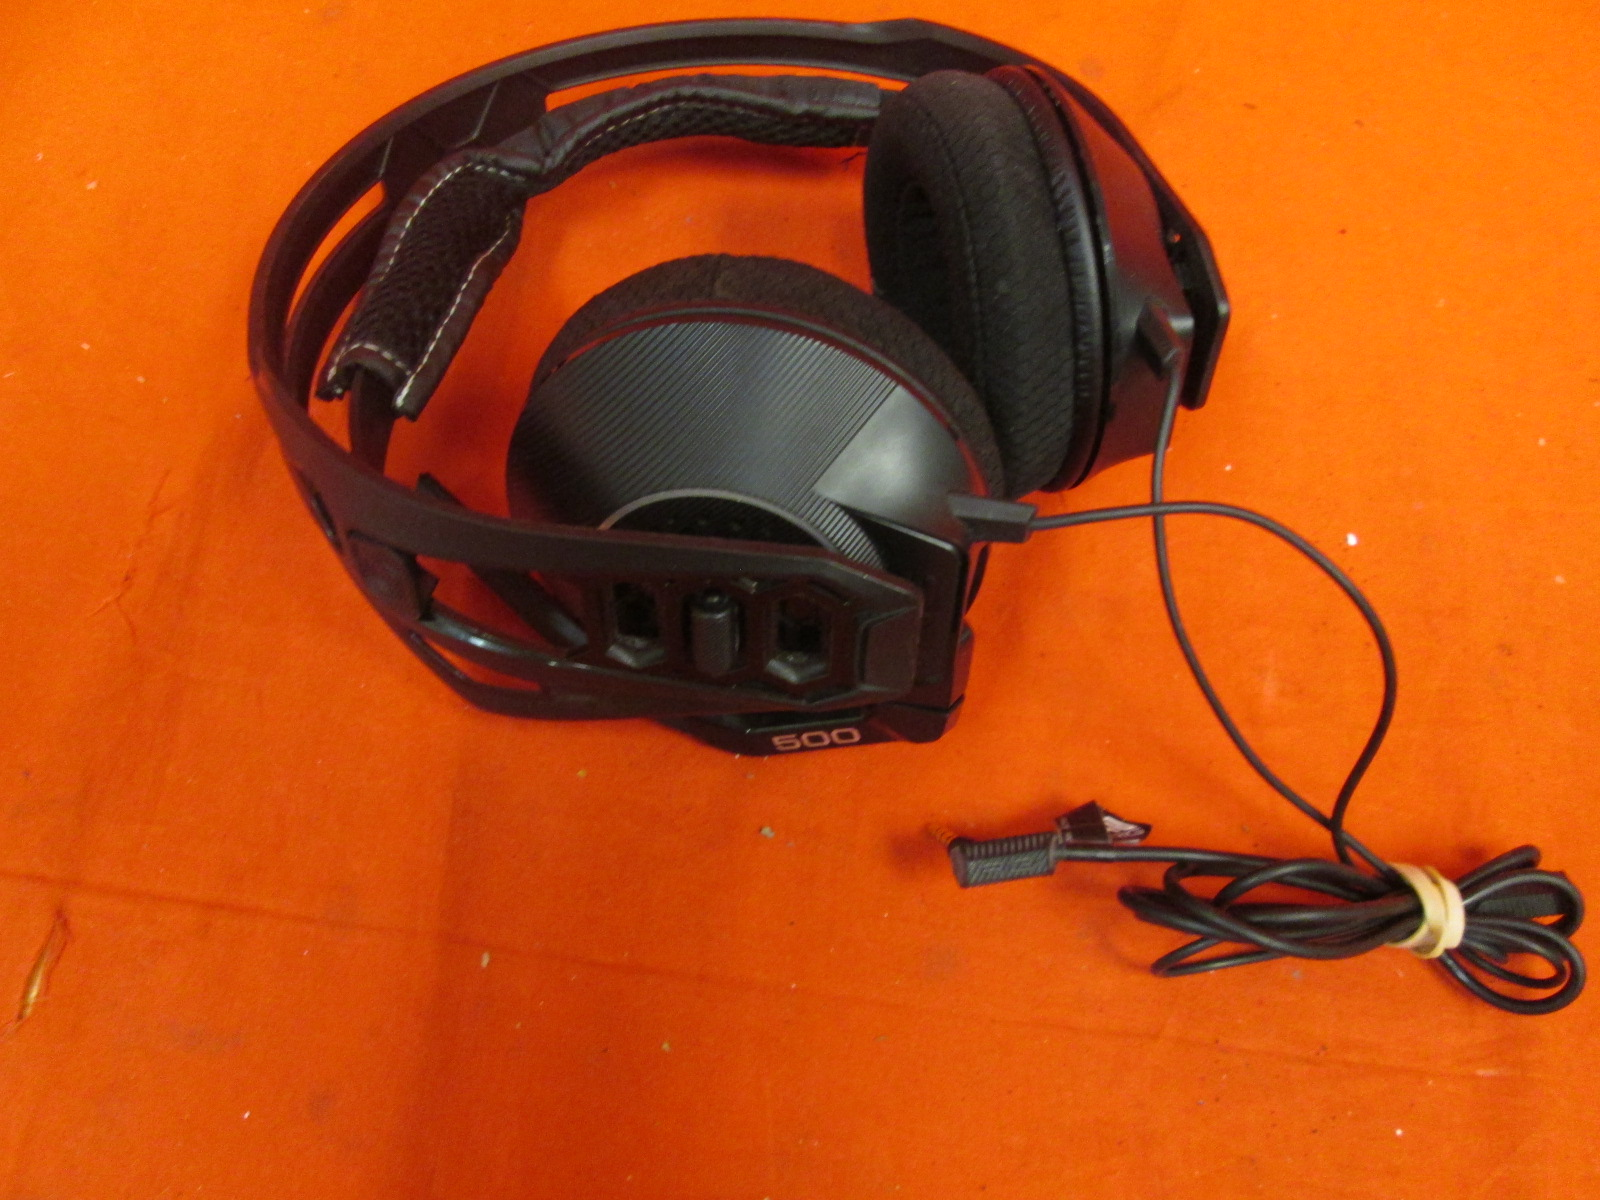 Plantronics Rig 500 3.5MM Stereo Gaming Headset For PS4 And Xbox One